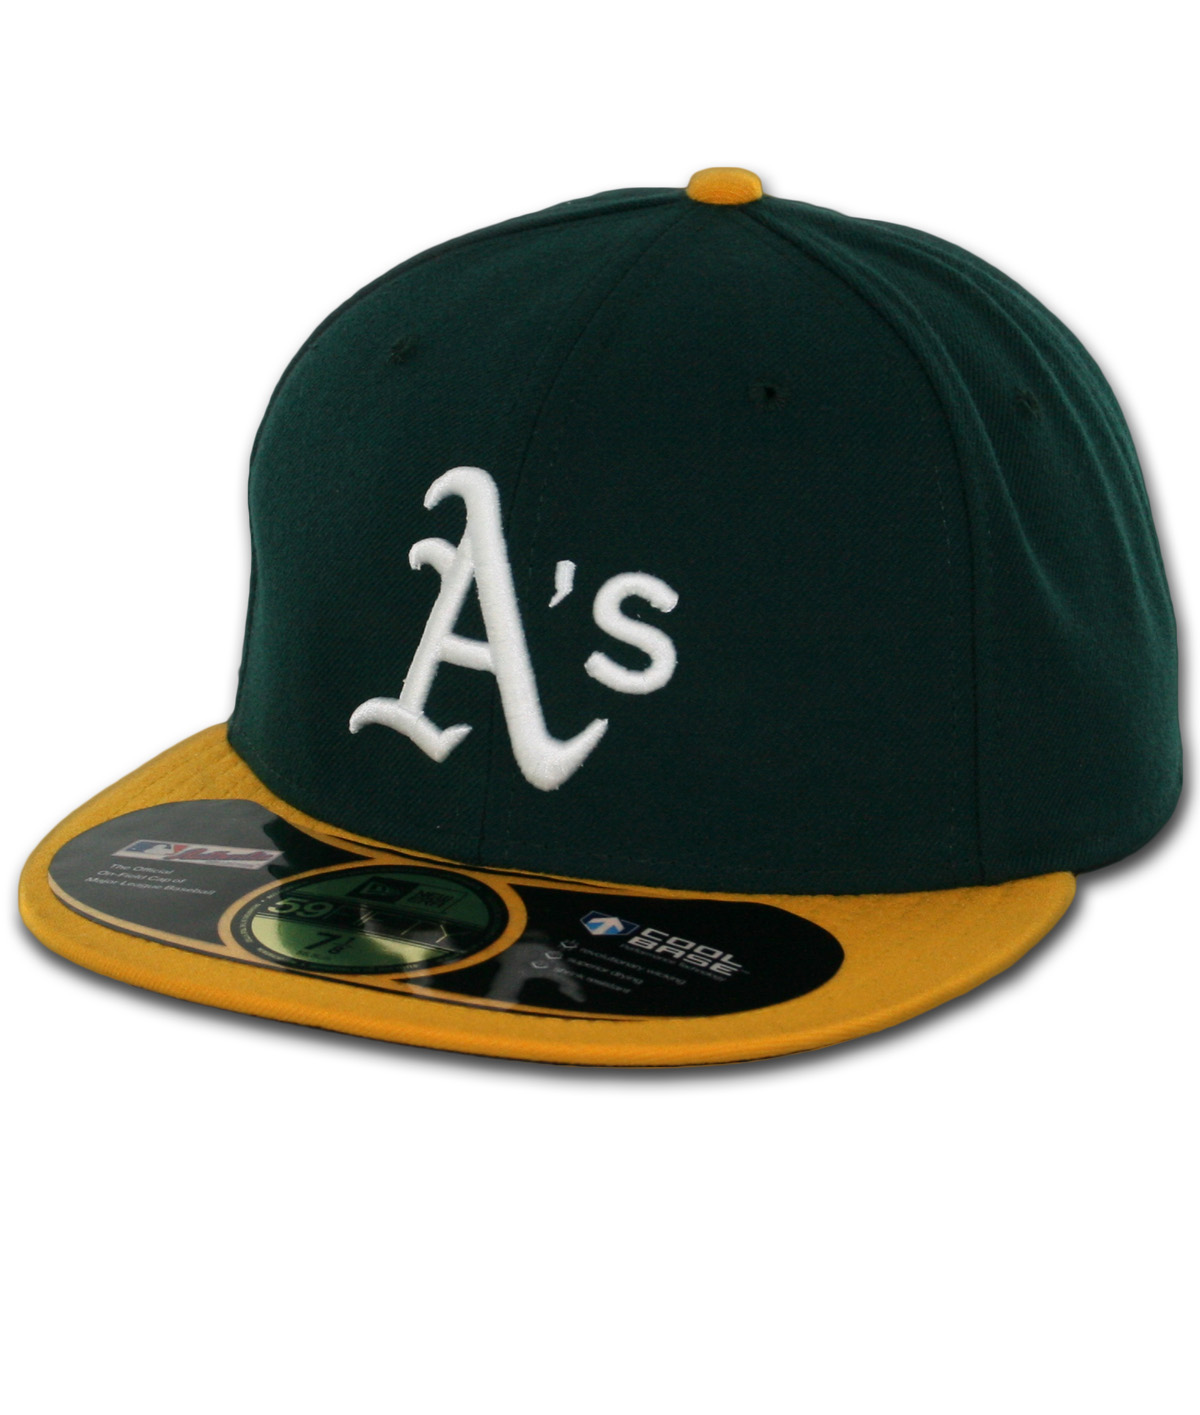 77bfc4a79829 New Era 59Fifty Oakland Athletics 2016 Home Authentic On Field Fitted Hat